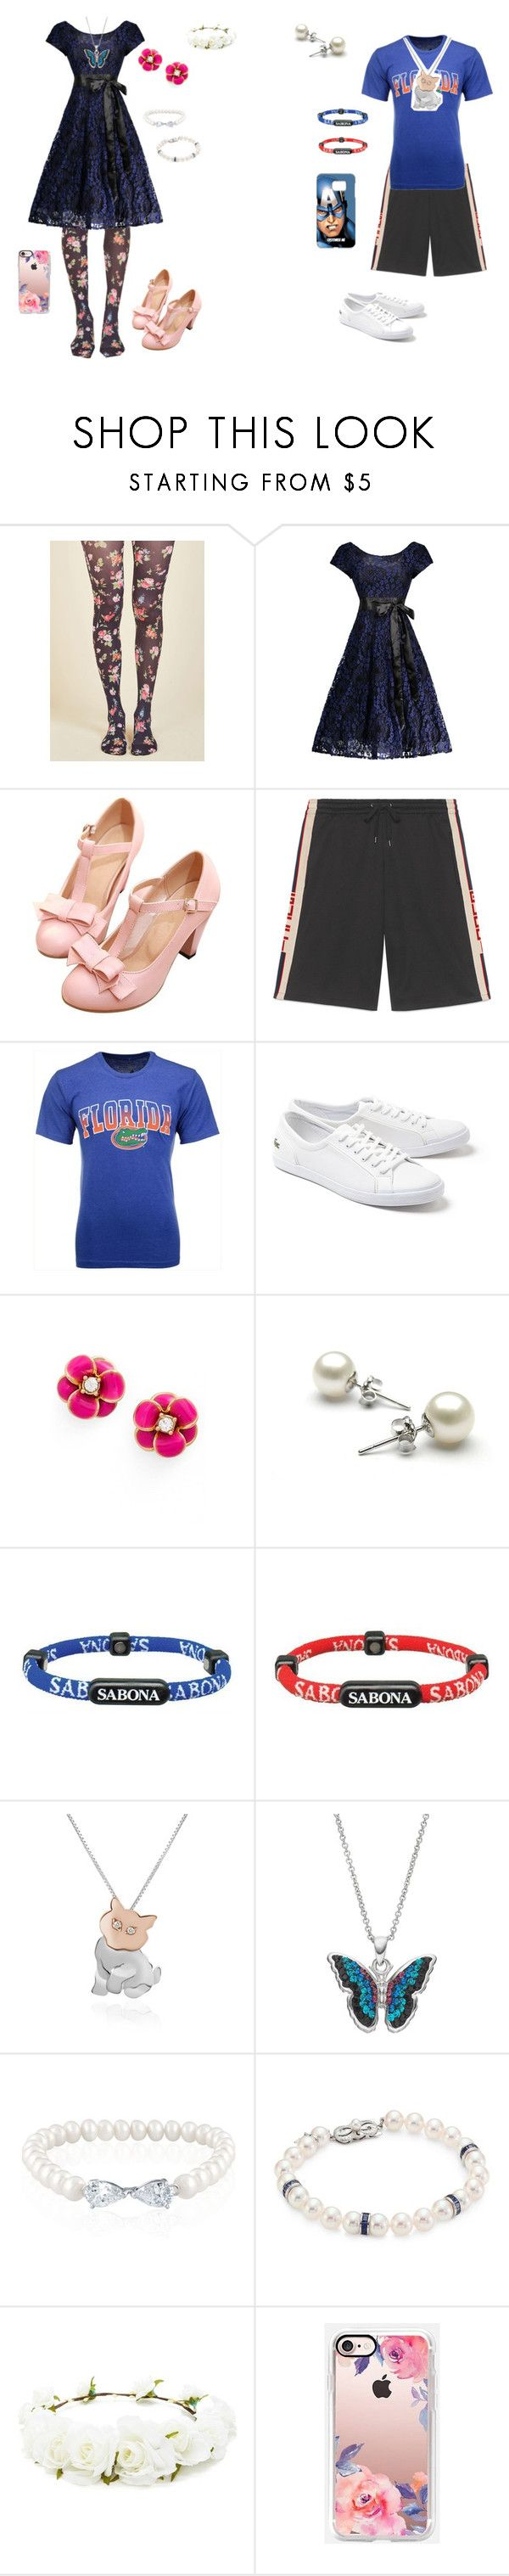 """""""Girly Girl vs. Tomboy: Family reunion outfits"""" by sierra-ivy on Polyvore featuring BRIO, Gucci, Colosseum, Lacoste, Kate Spade, Sabona, Forzieri, Belk & Co., Mikimoto and Forever 21"""